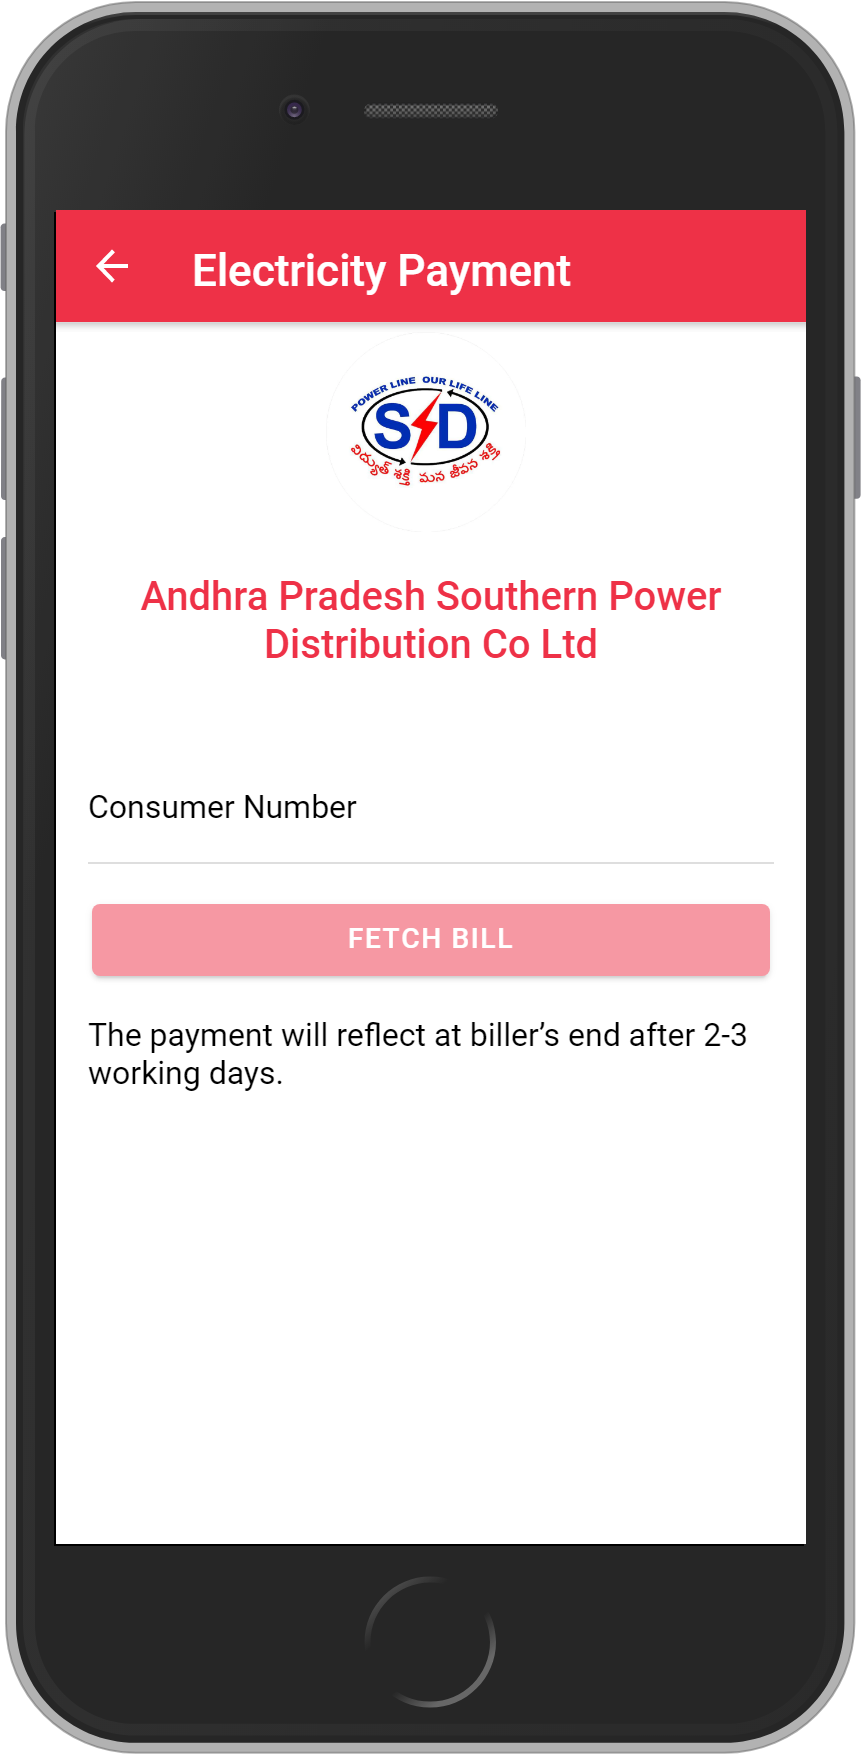 Get UNLIMITED <b>0.1%</b> CASHBACK on APSPDCL-Southern Power Distribution CO AP Ltd Bill Payment.